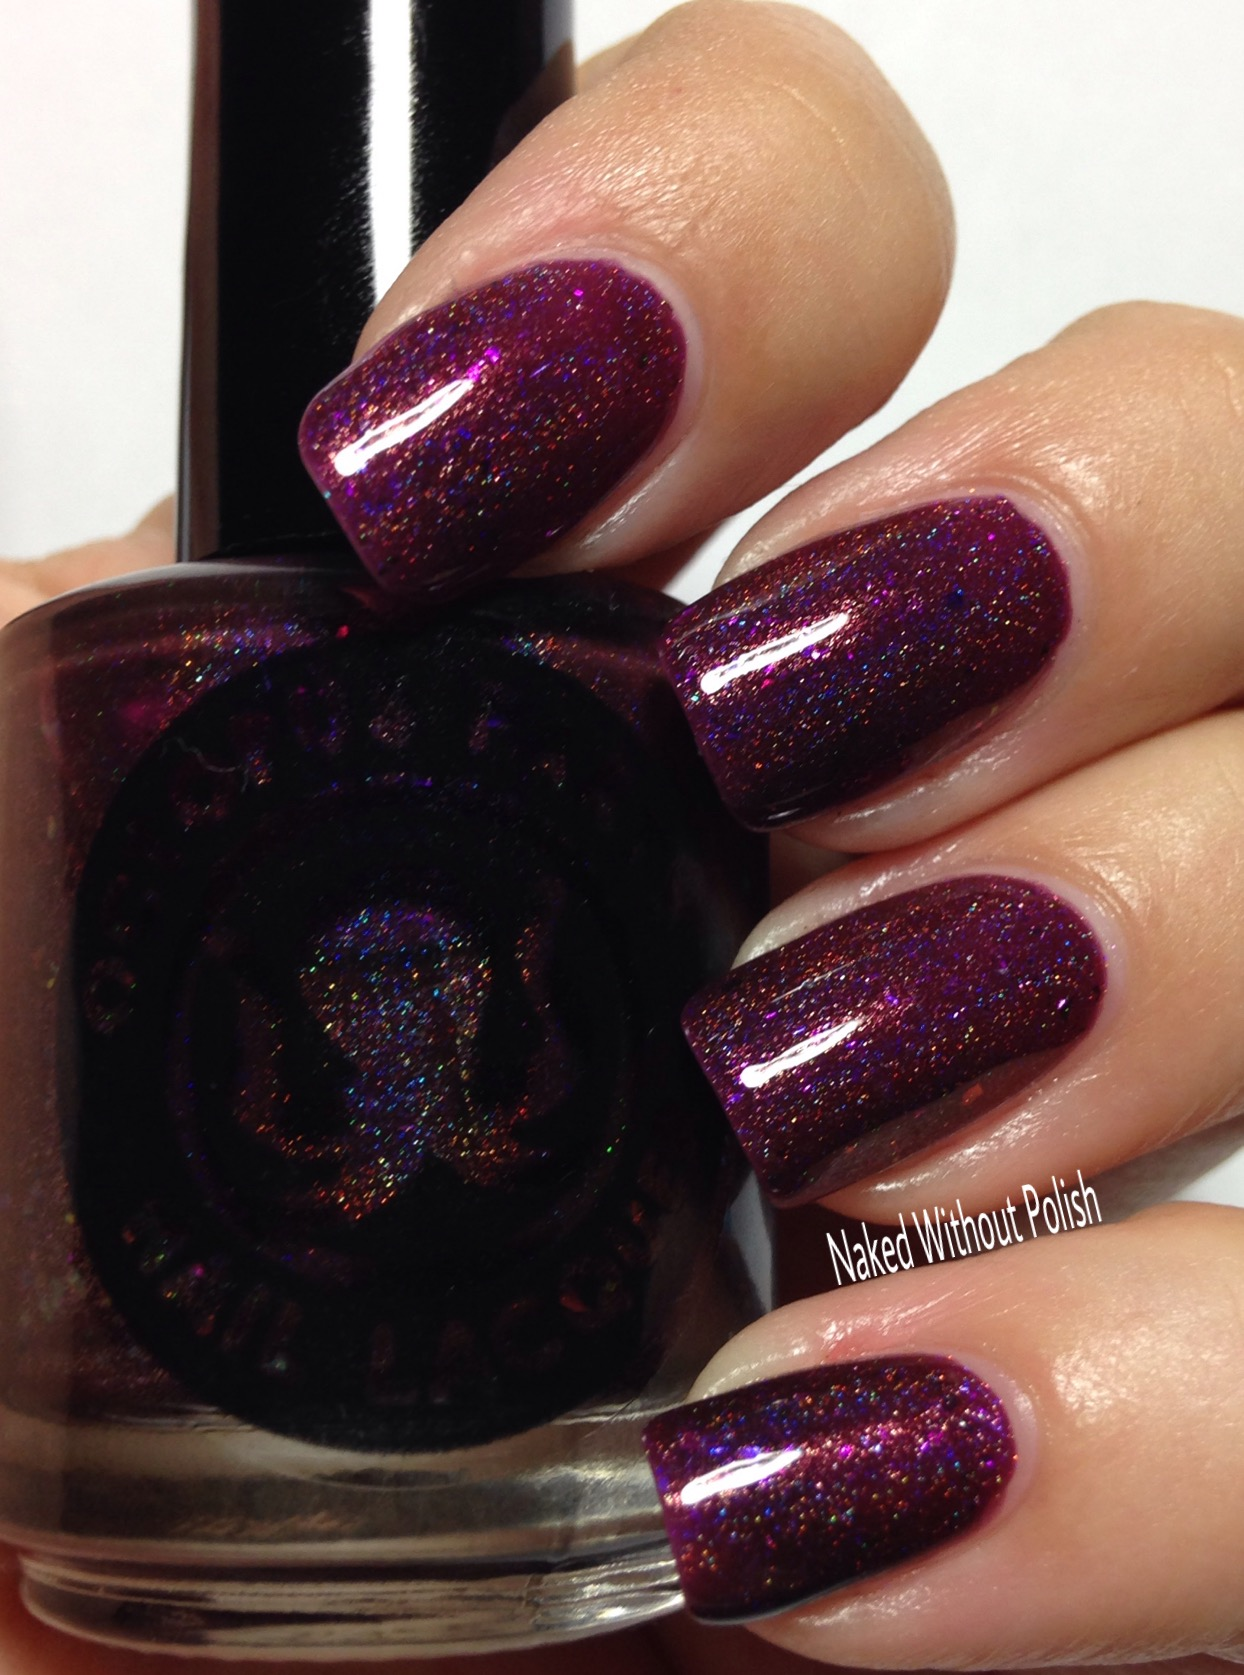 Octopus-Party-Nail-Lacquer-Grimes-11